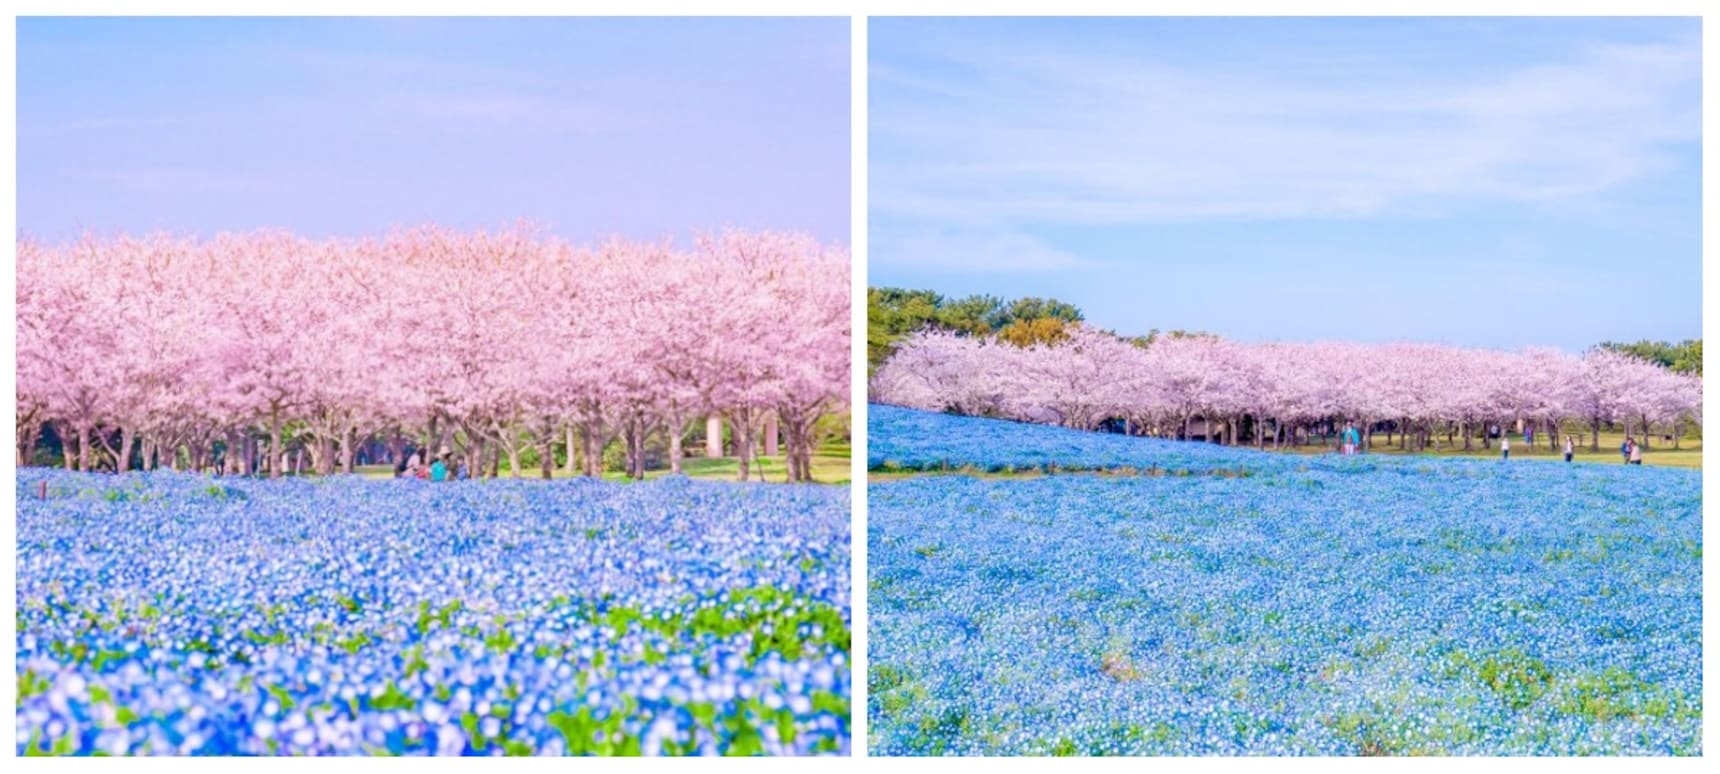 Flowers & Sakura at Seaside Park in Fukuoka